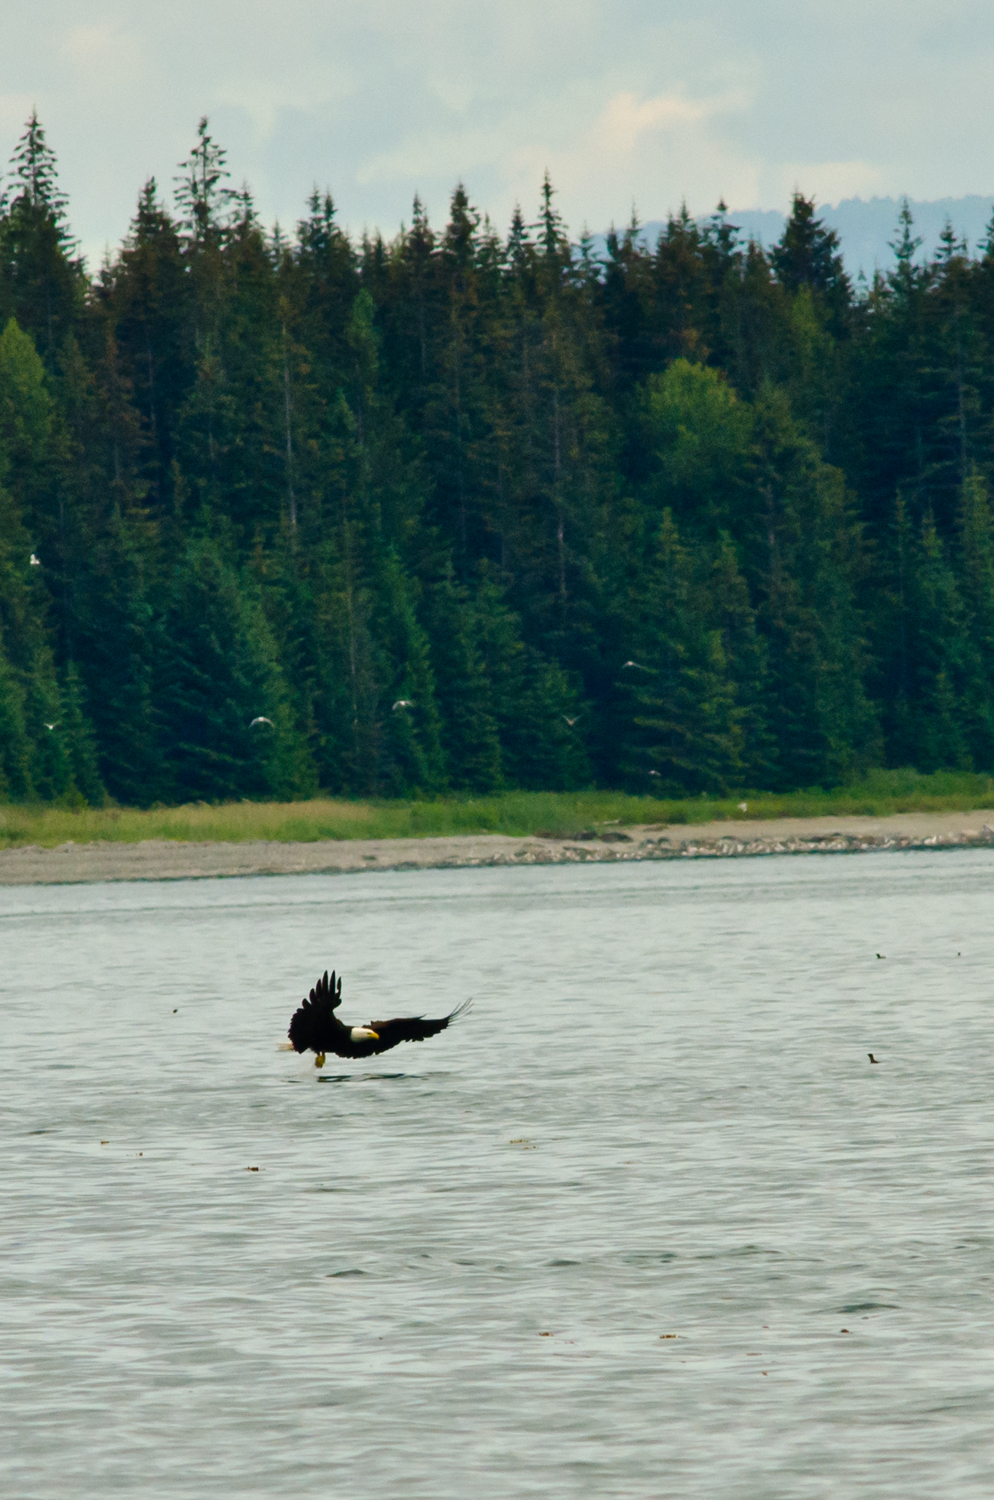 A bald eagle searches for a meal in Glacier Bay, Alaska.